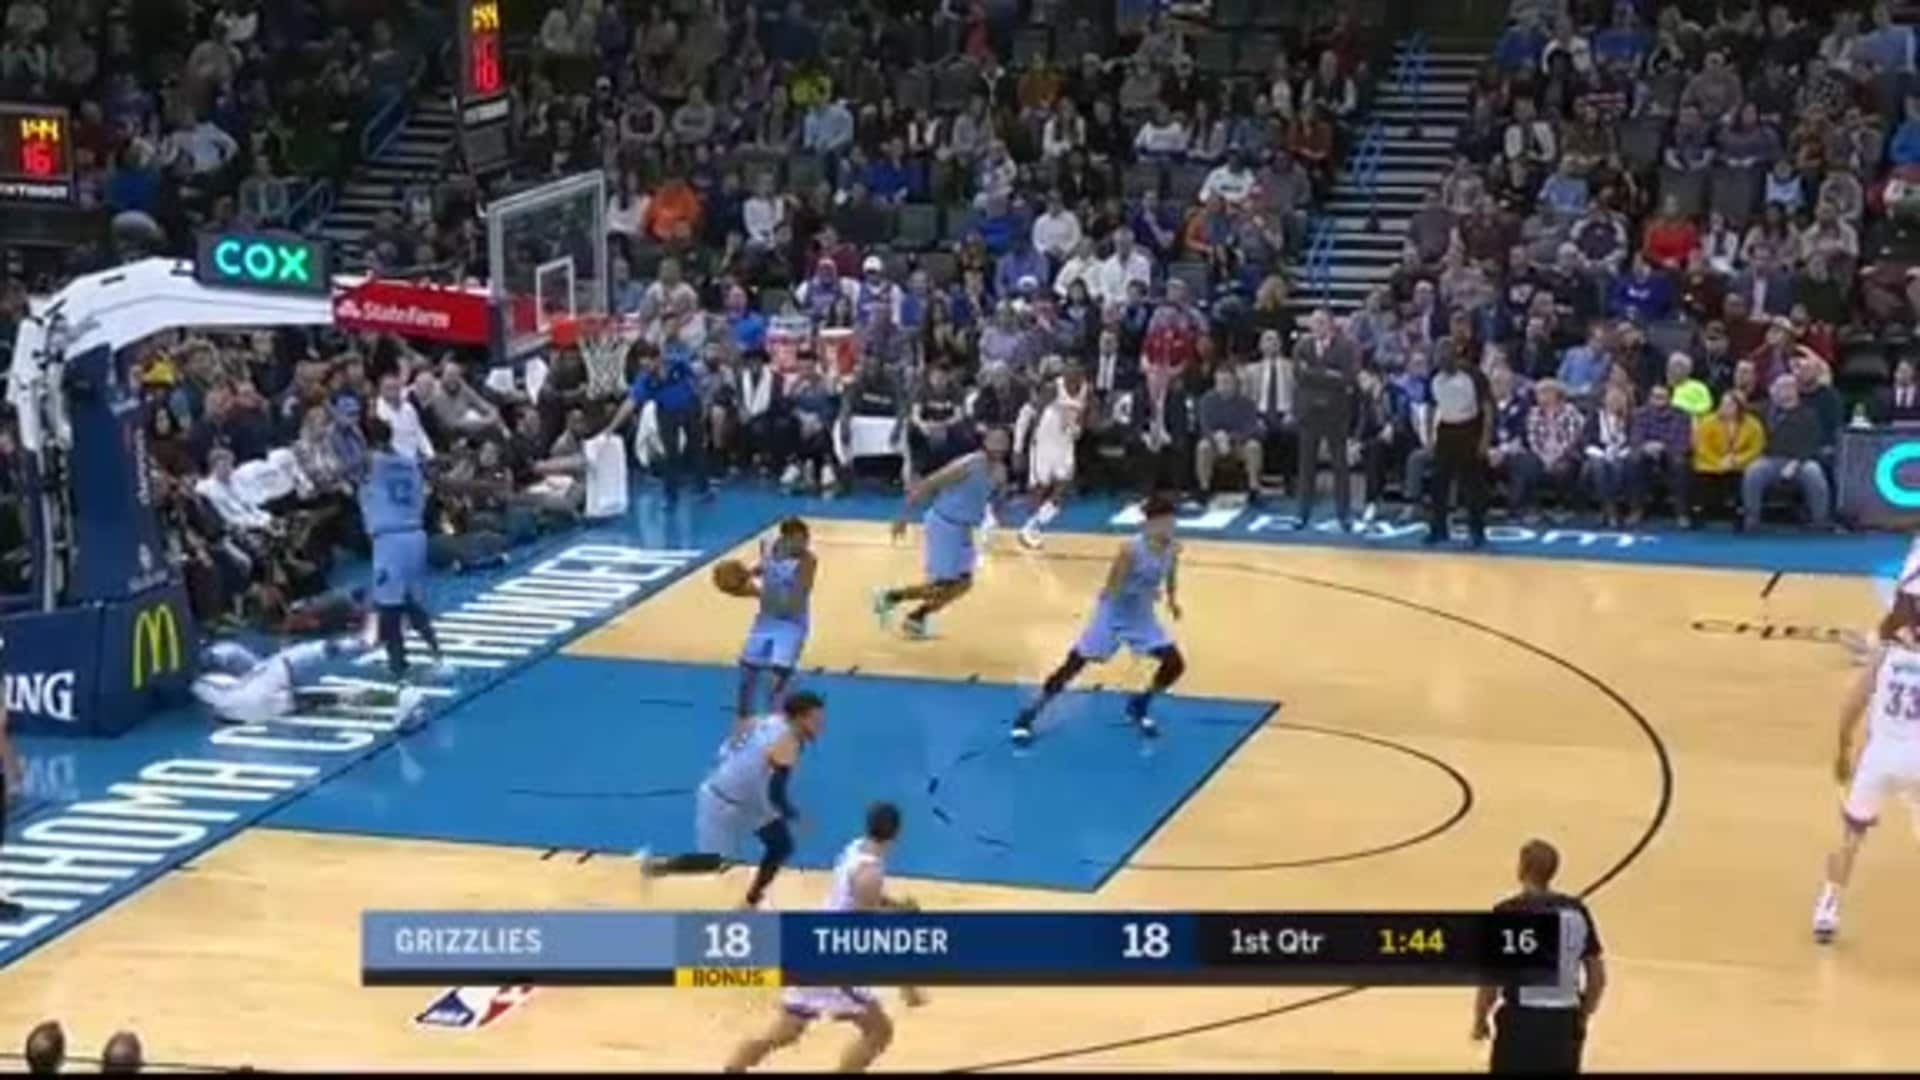 Grizzlies @ Thunder highlights 12.26.19